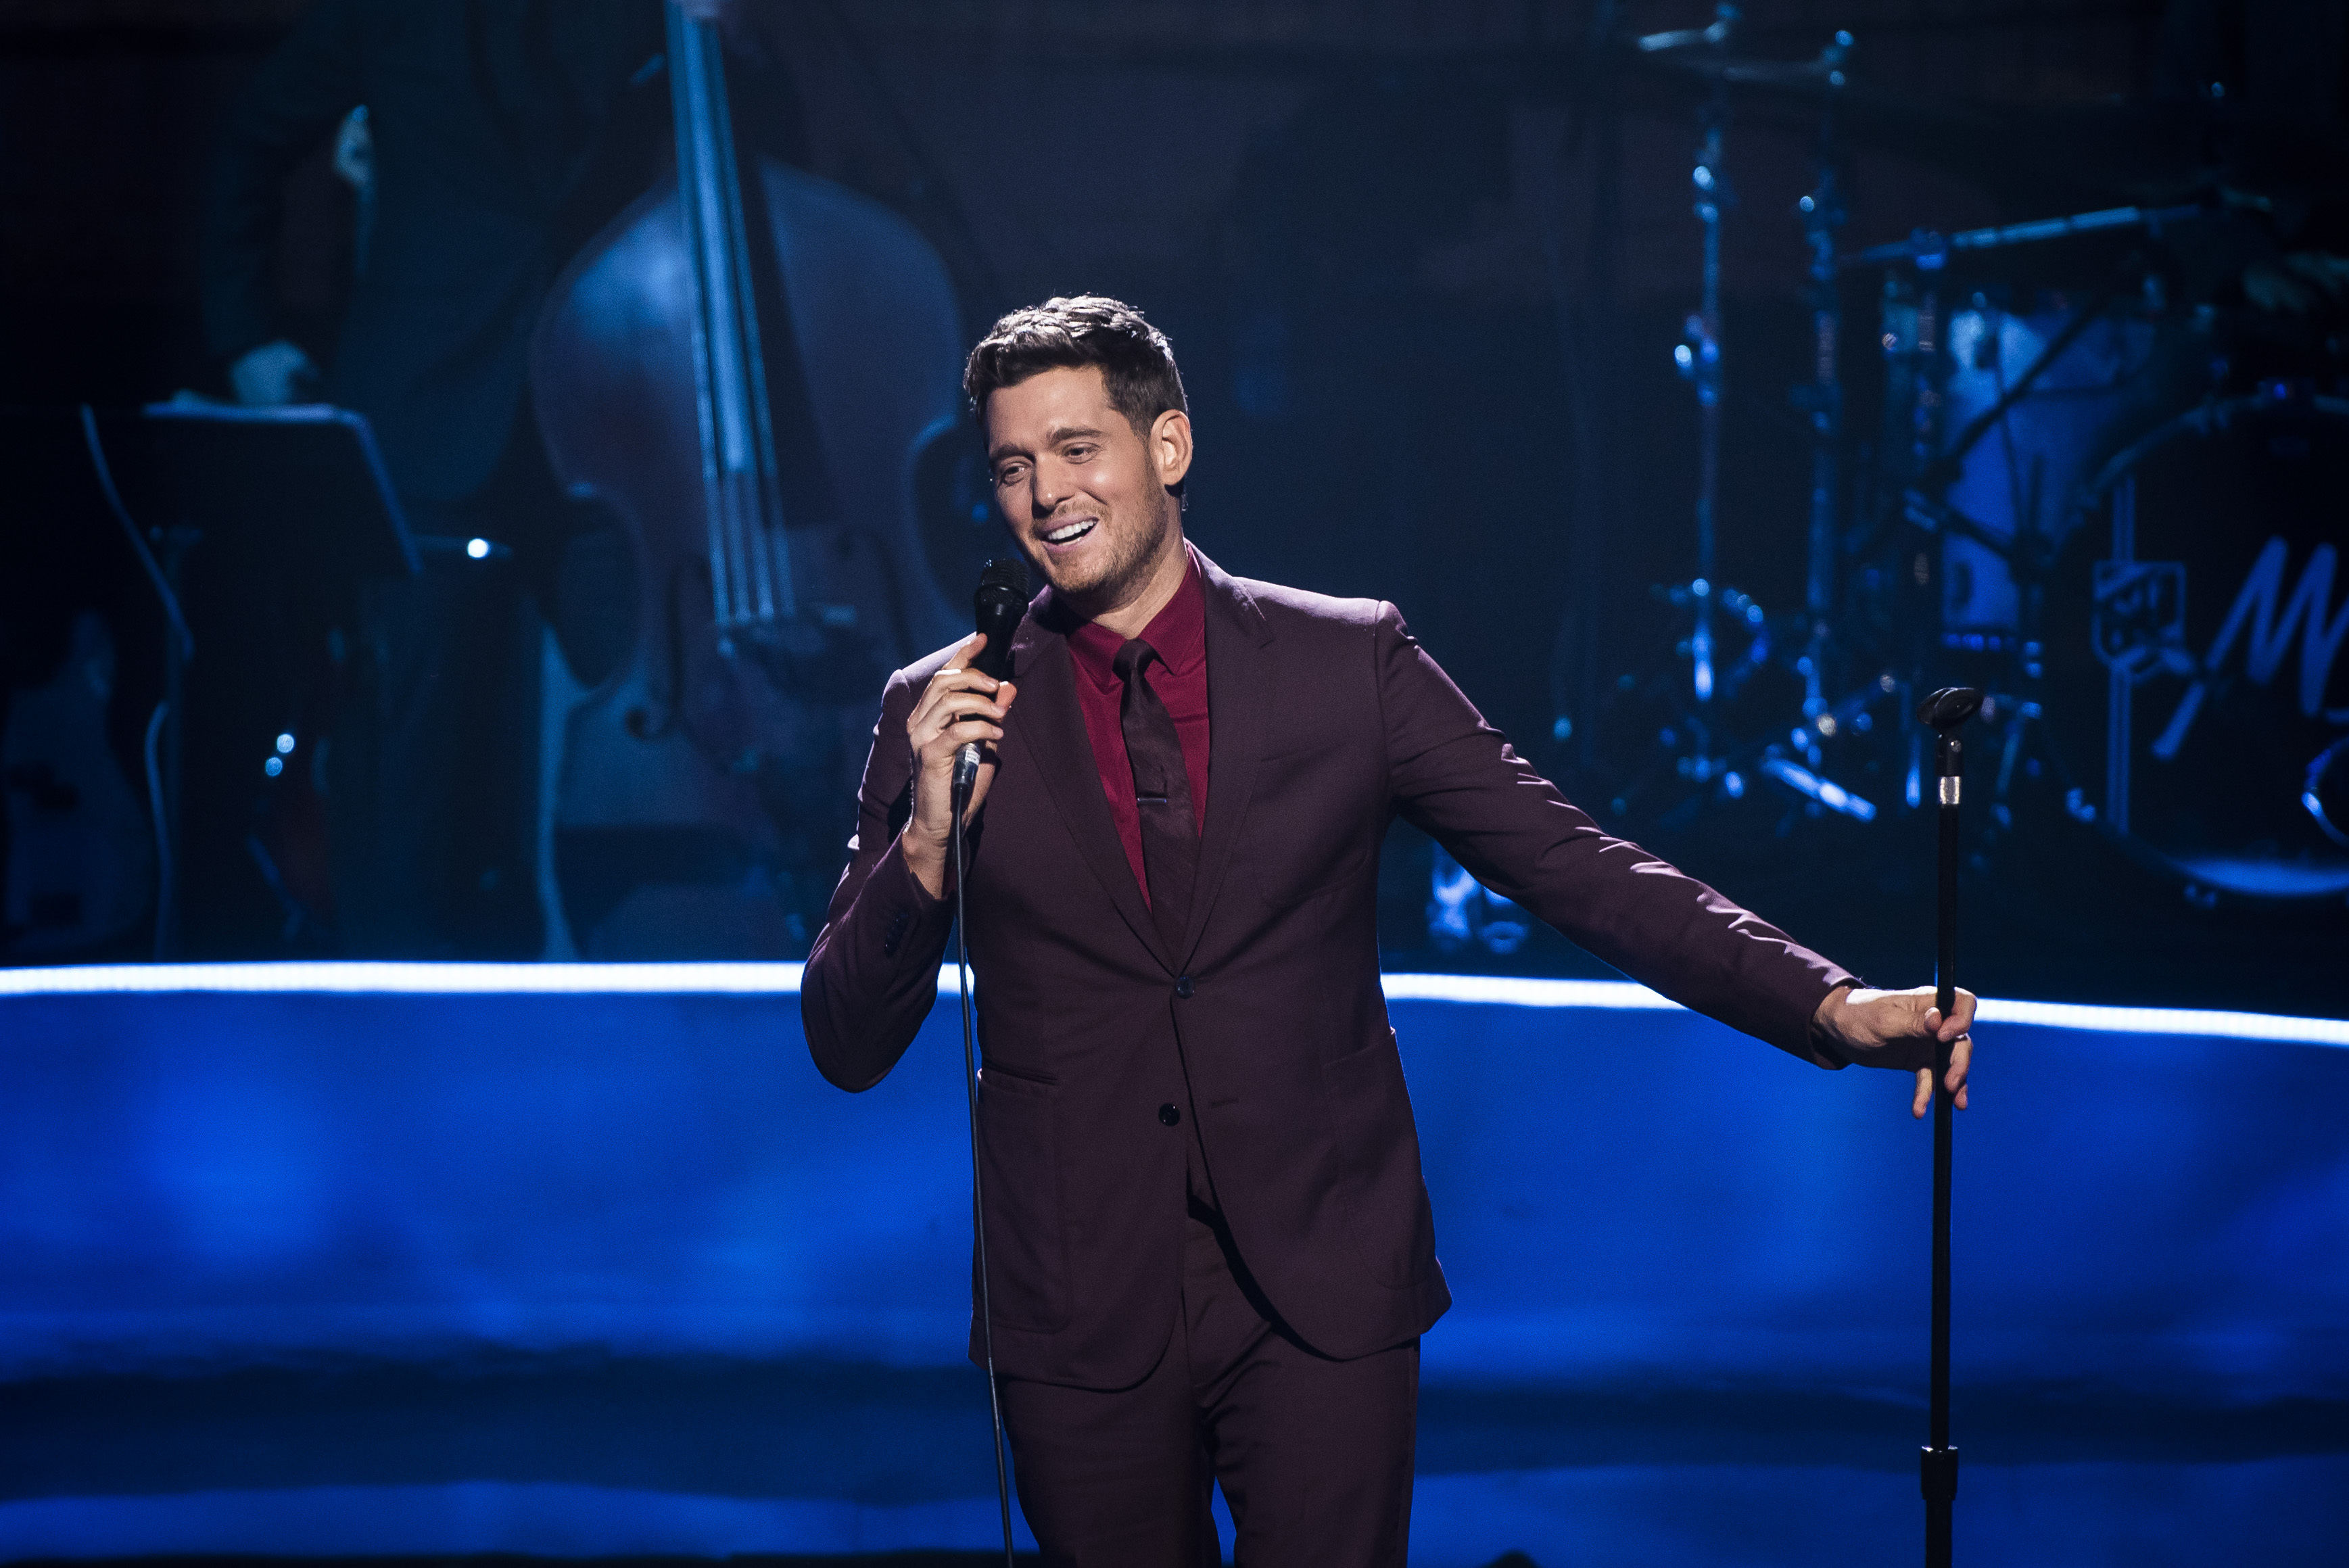 Michael Buble announces he is quitting music following son's cancer battle